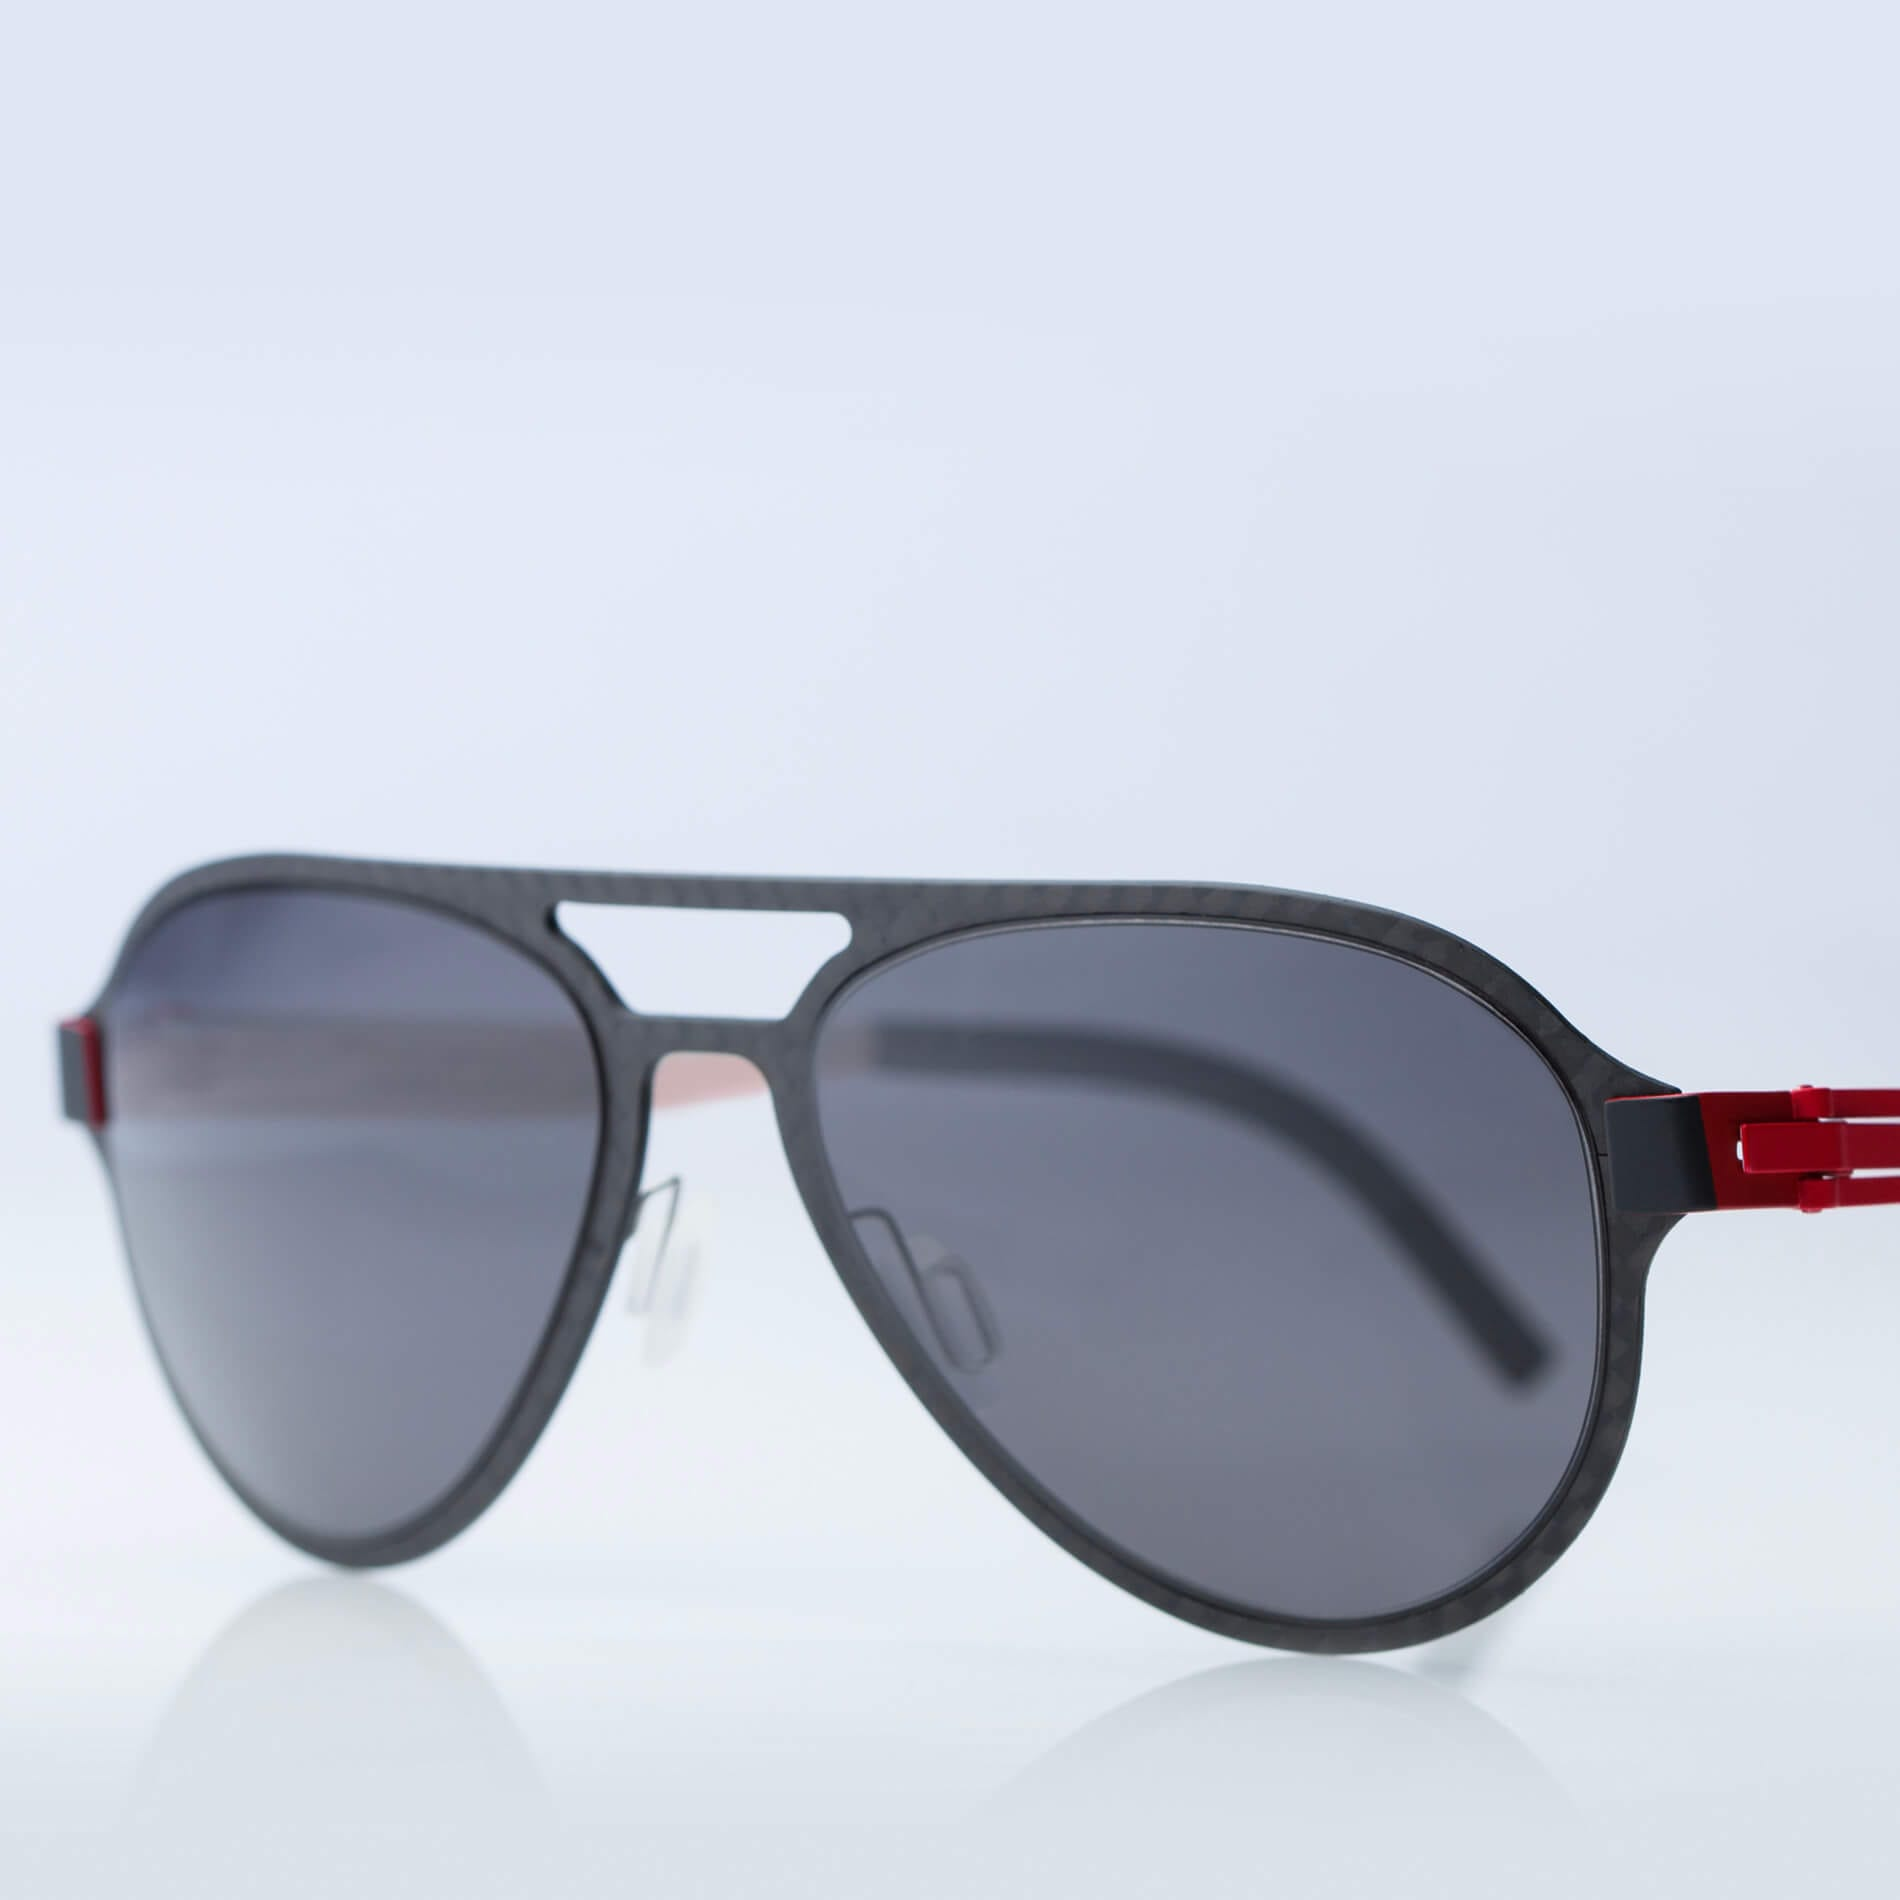 OVVO Optics Carbon Fiber & Wood Collection